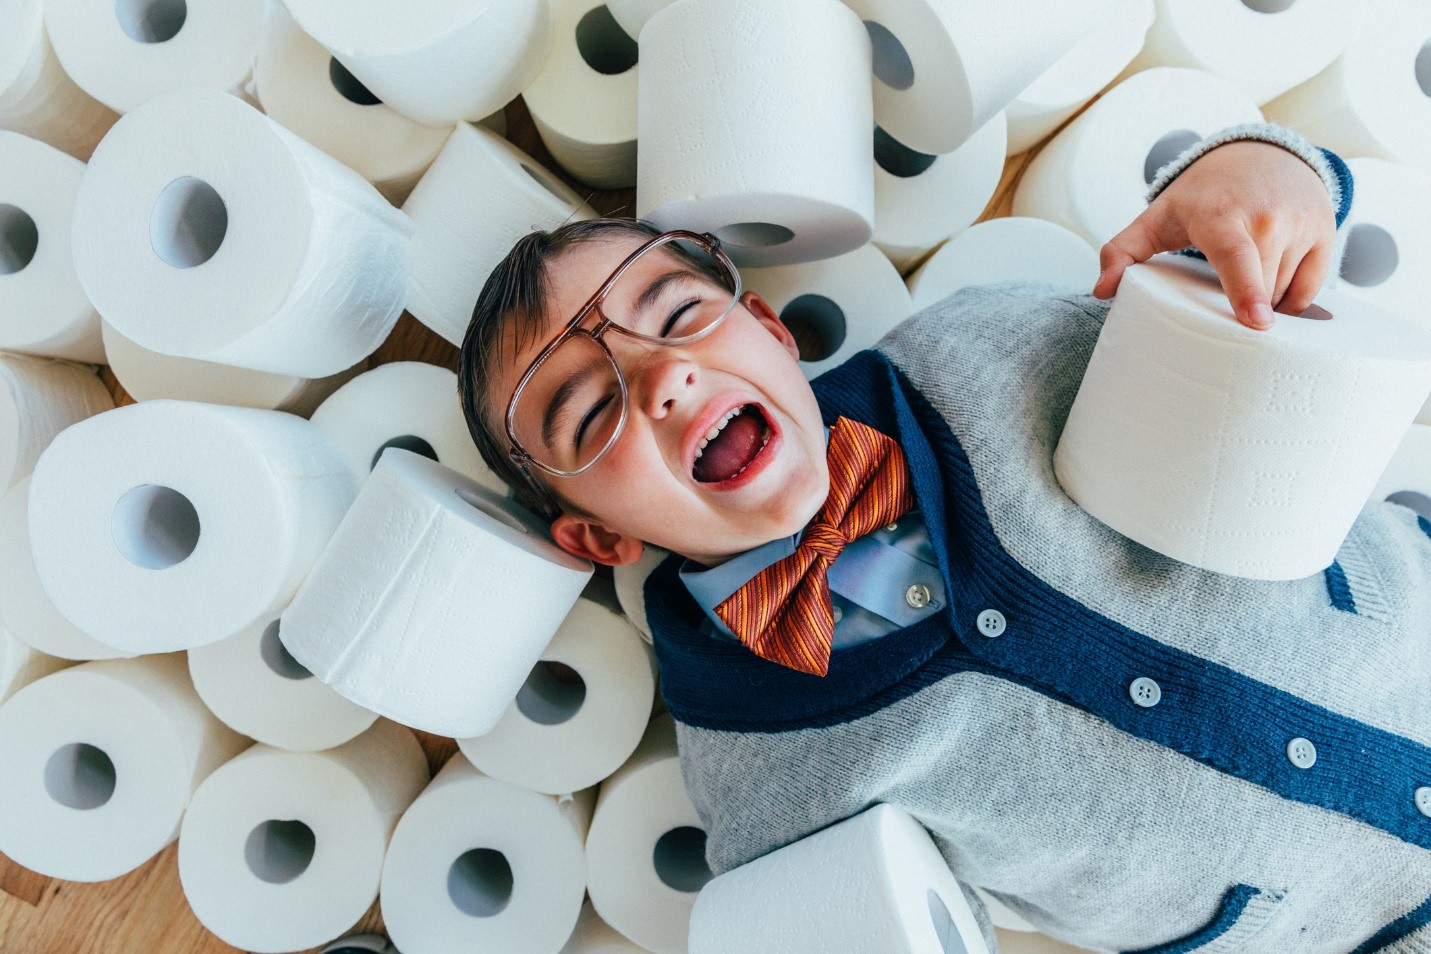 RV toilet paper - kid on pile of toilet paper